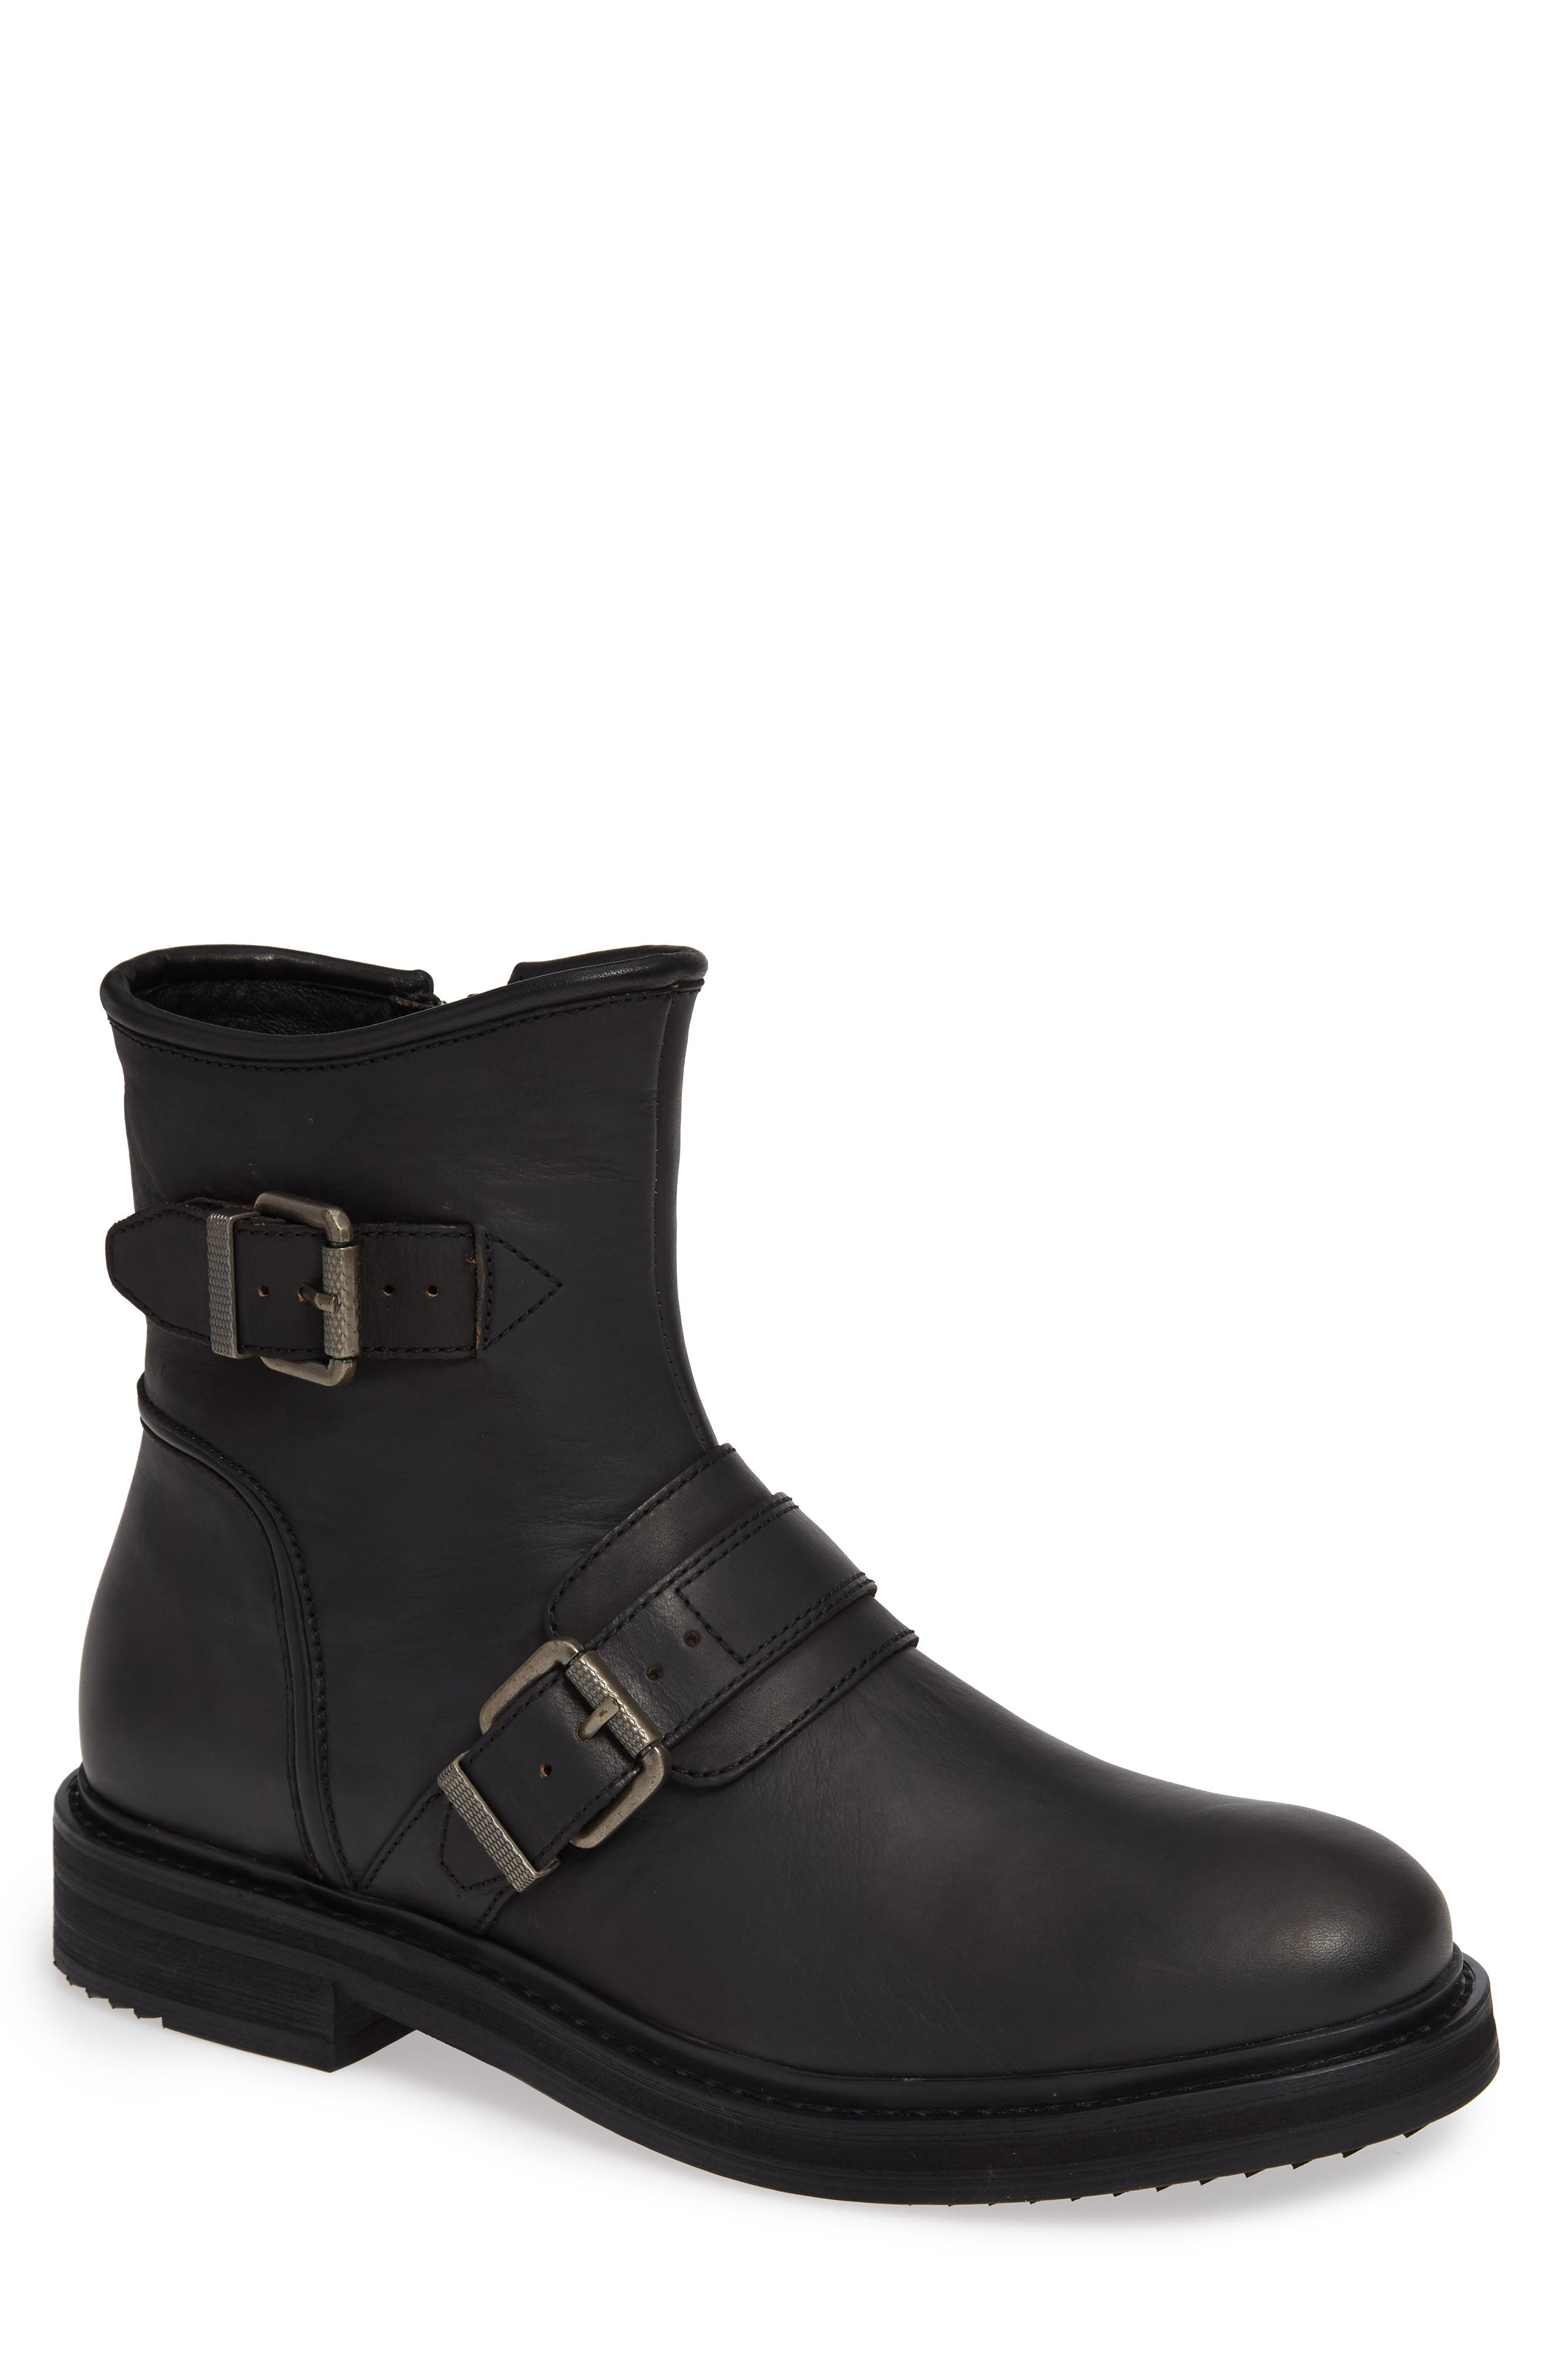 Cooper Moto Buckle Boot,                             Main thumbnail 1, color,                             MINERAL BLACK LEATHER